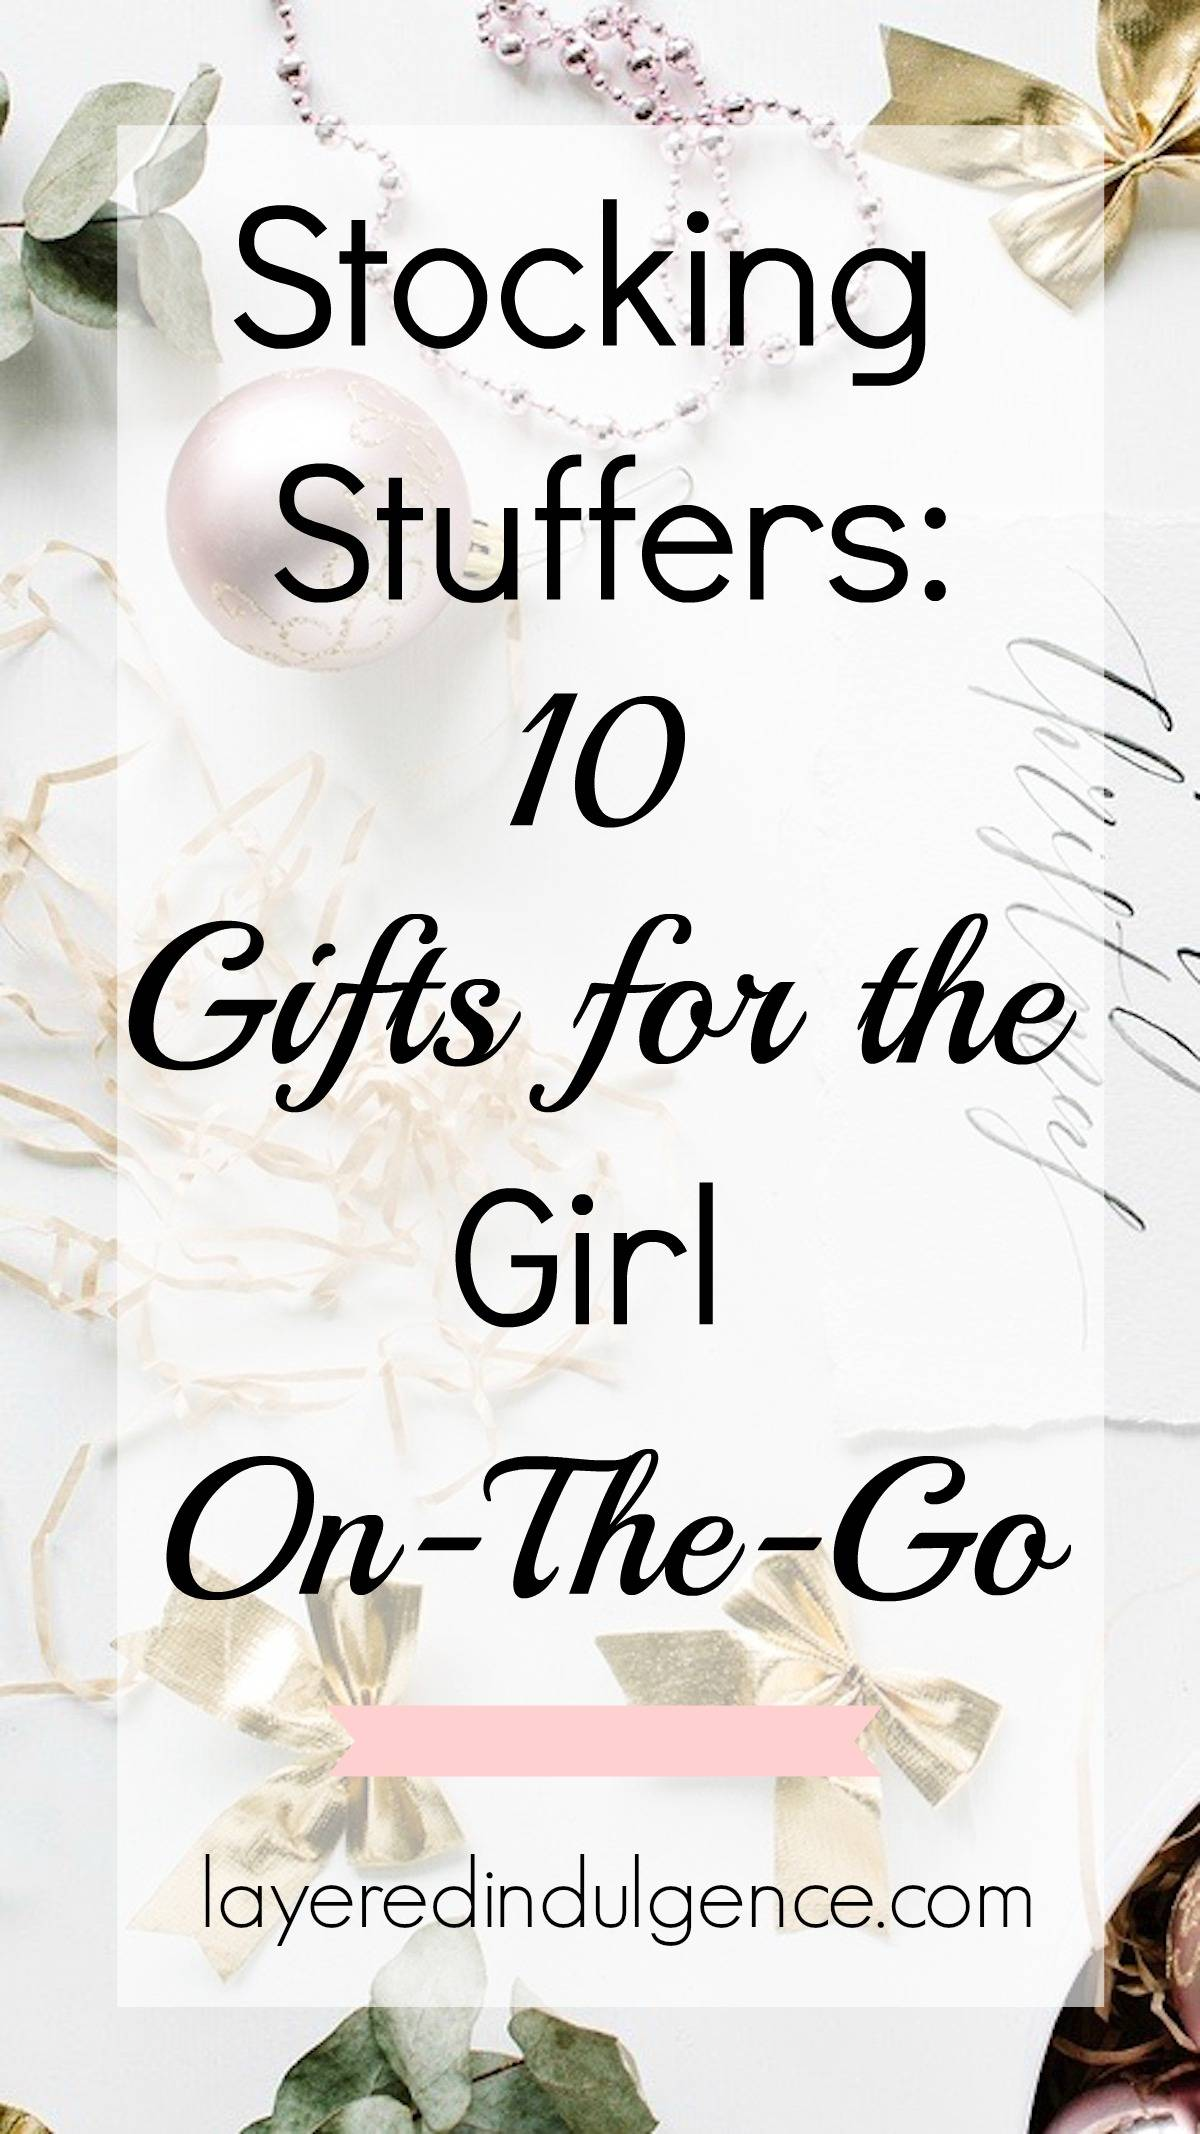 Check out the best Christmas stocking stuffers for the girl on the go! This holiday gift guide features the most covetable items all busy women are sure to love! From a pretty watch and travel mug to a leather tech case, these are the perfect stocking stuffers of 2016!